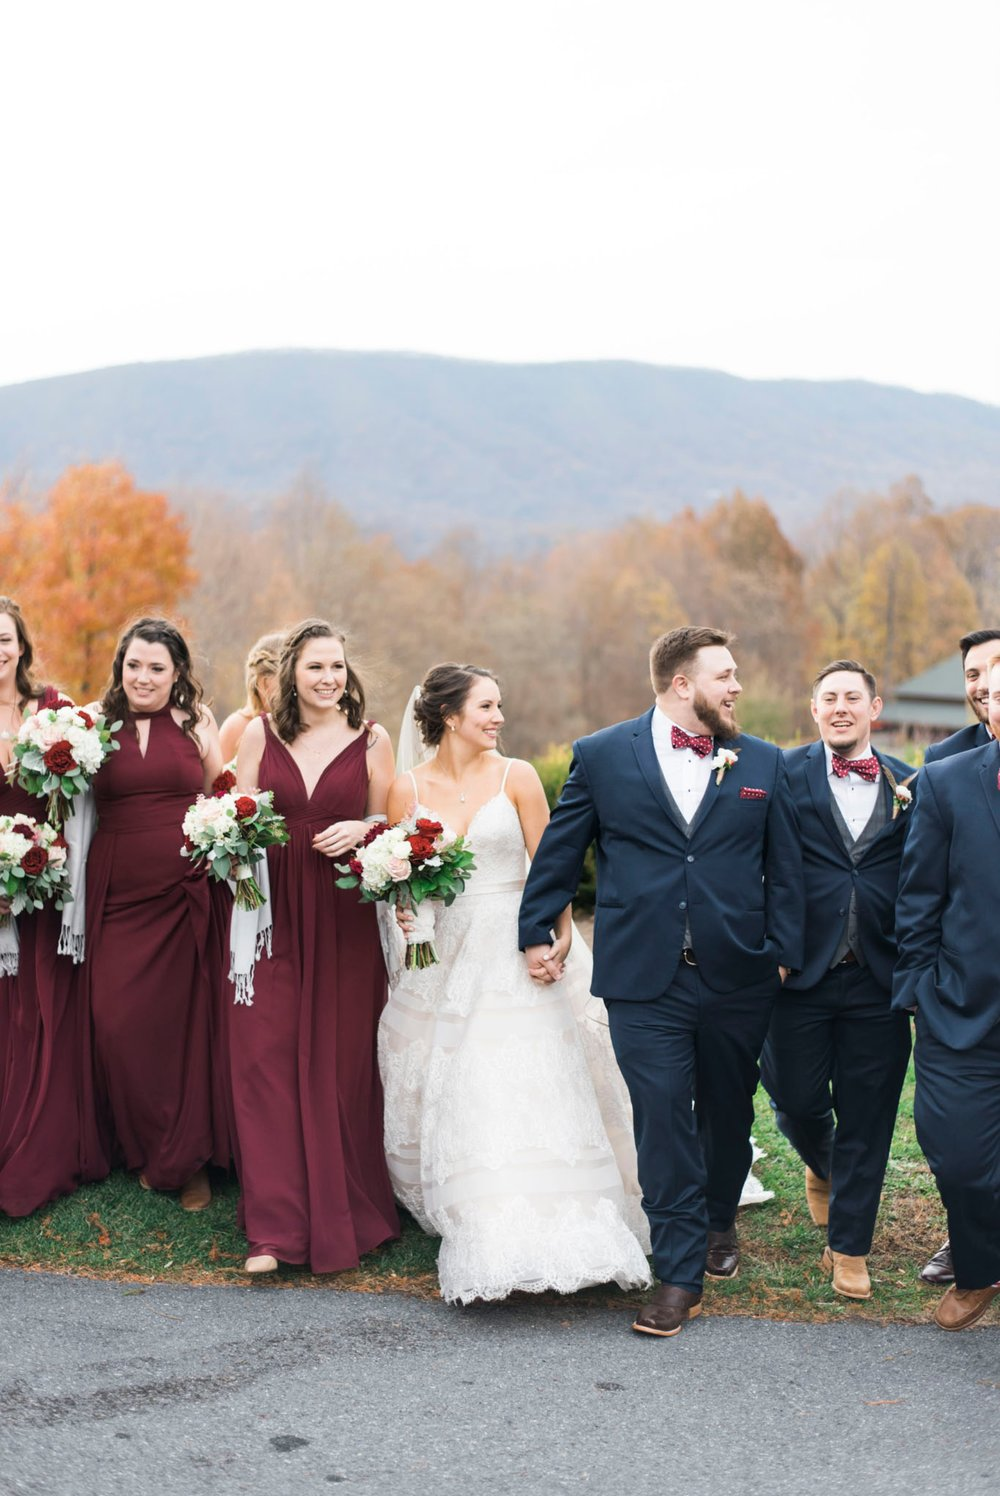 IrvineEstate_LexingtonVA_Wedding_FallWedding_VirginiaWeddingPhotographer 70.jpg